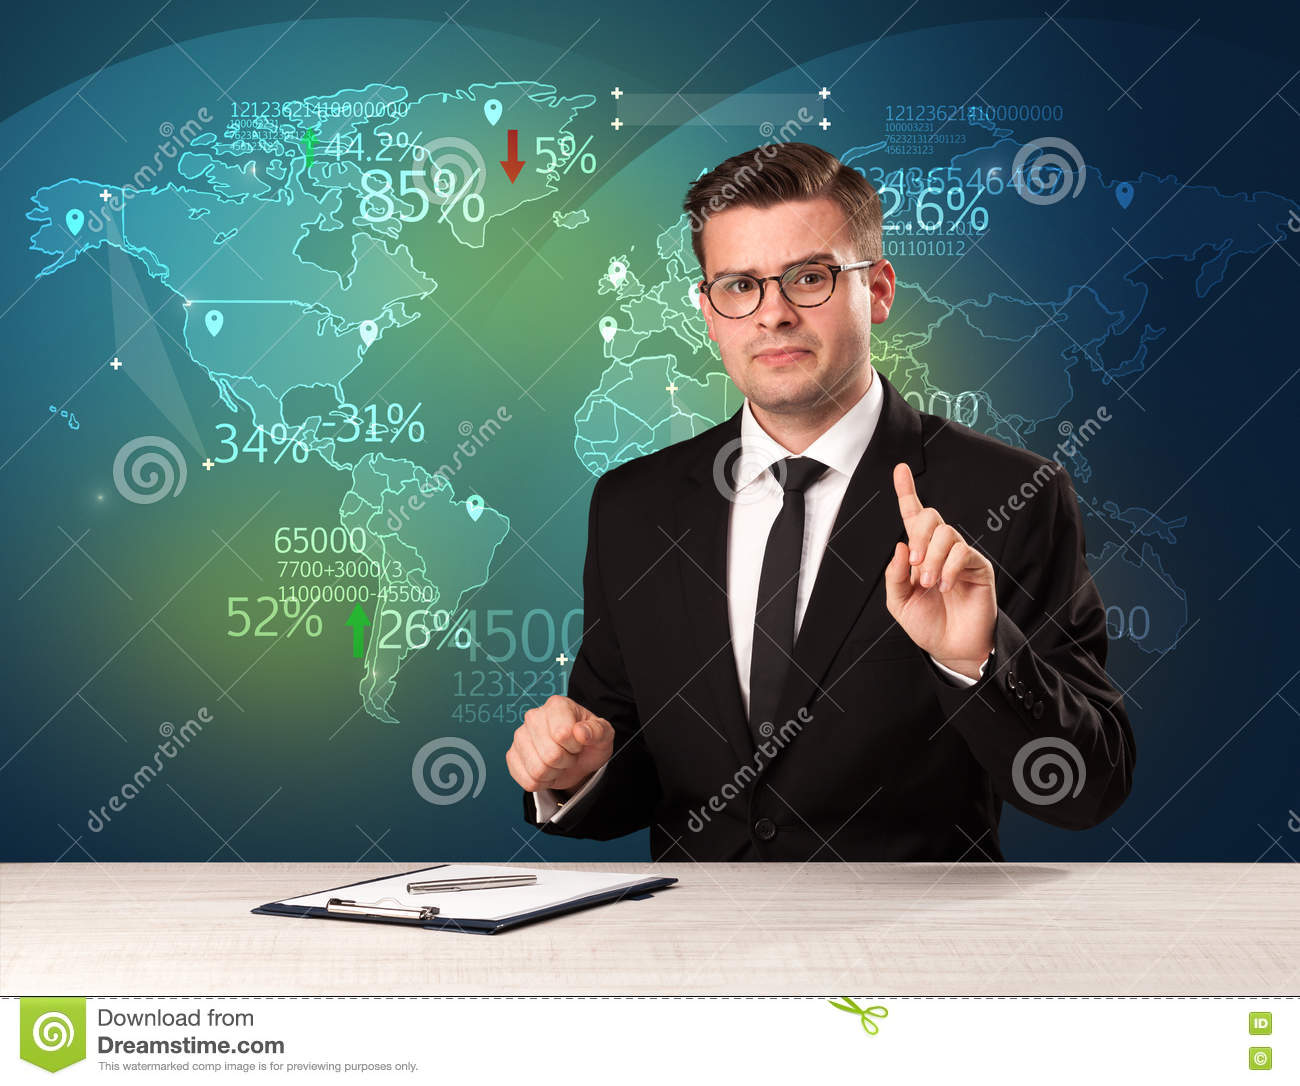 Trade market analyst is studio reporting world trading news with